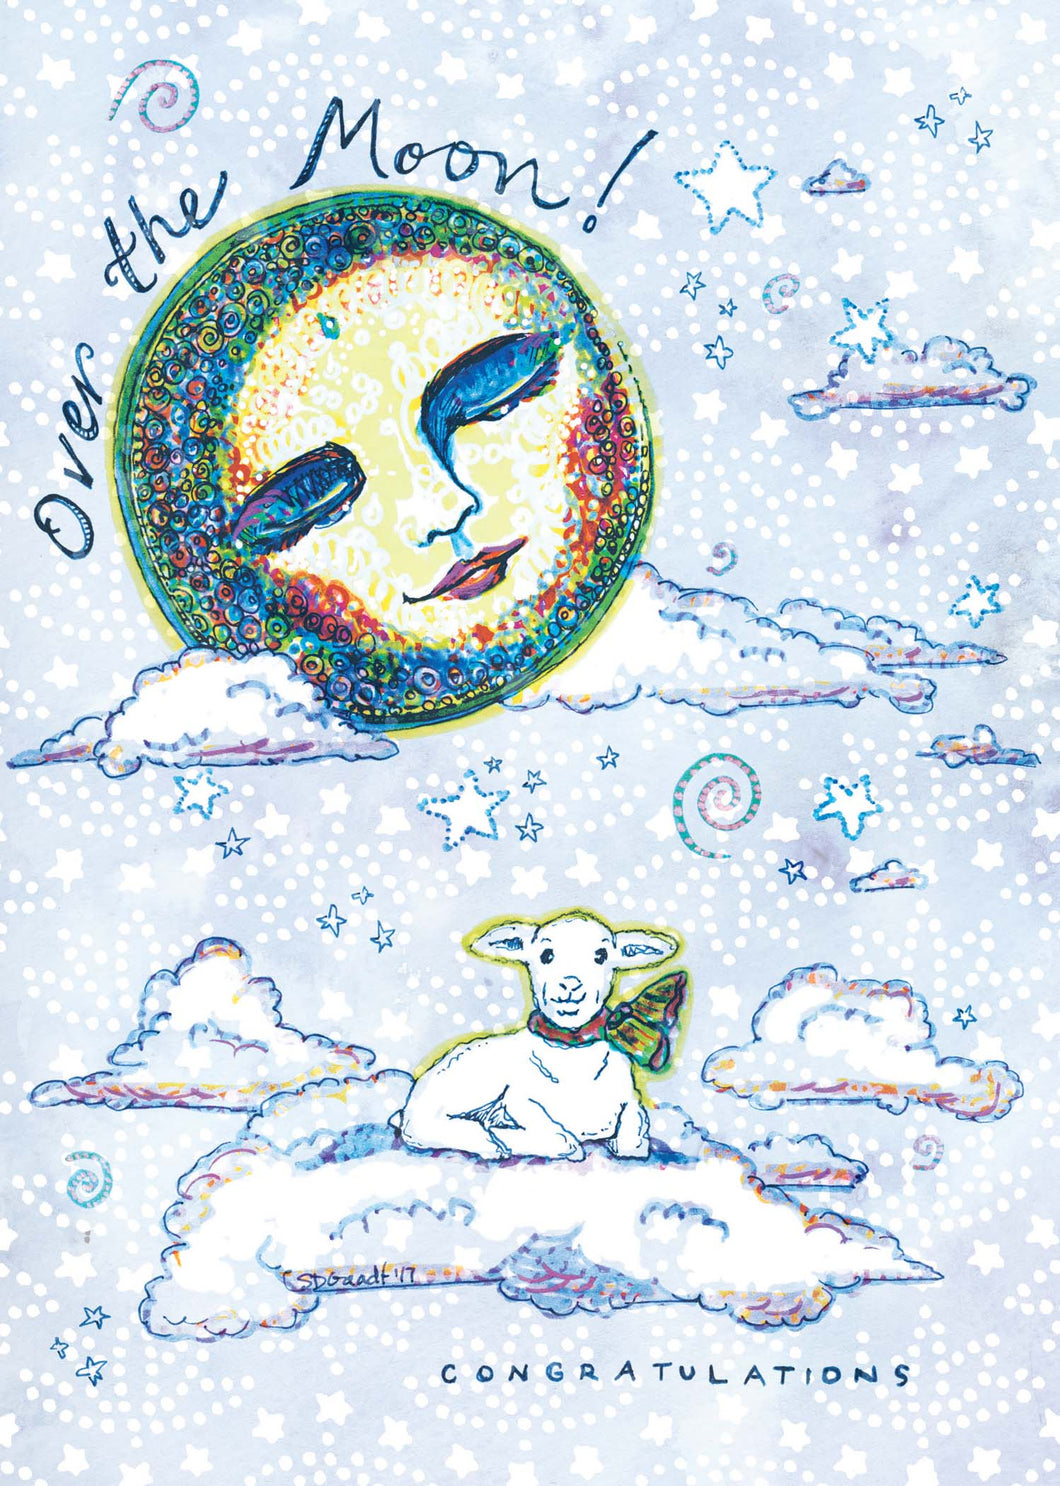 Over the Moon Congratulations Card